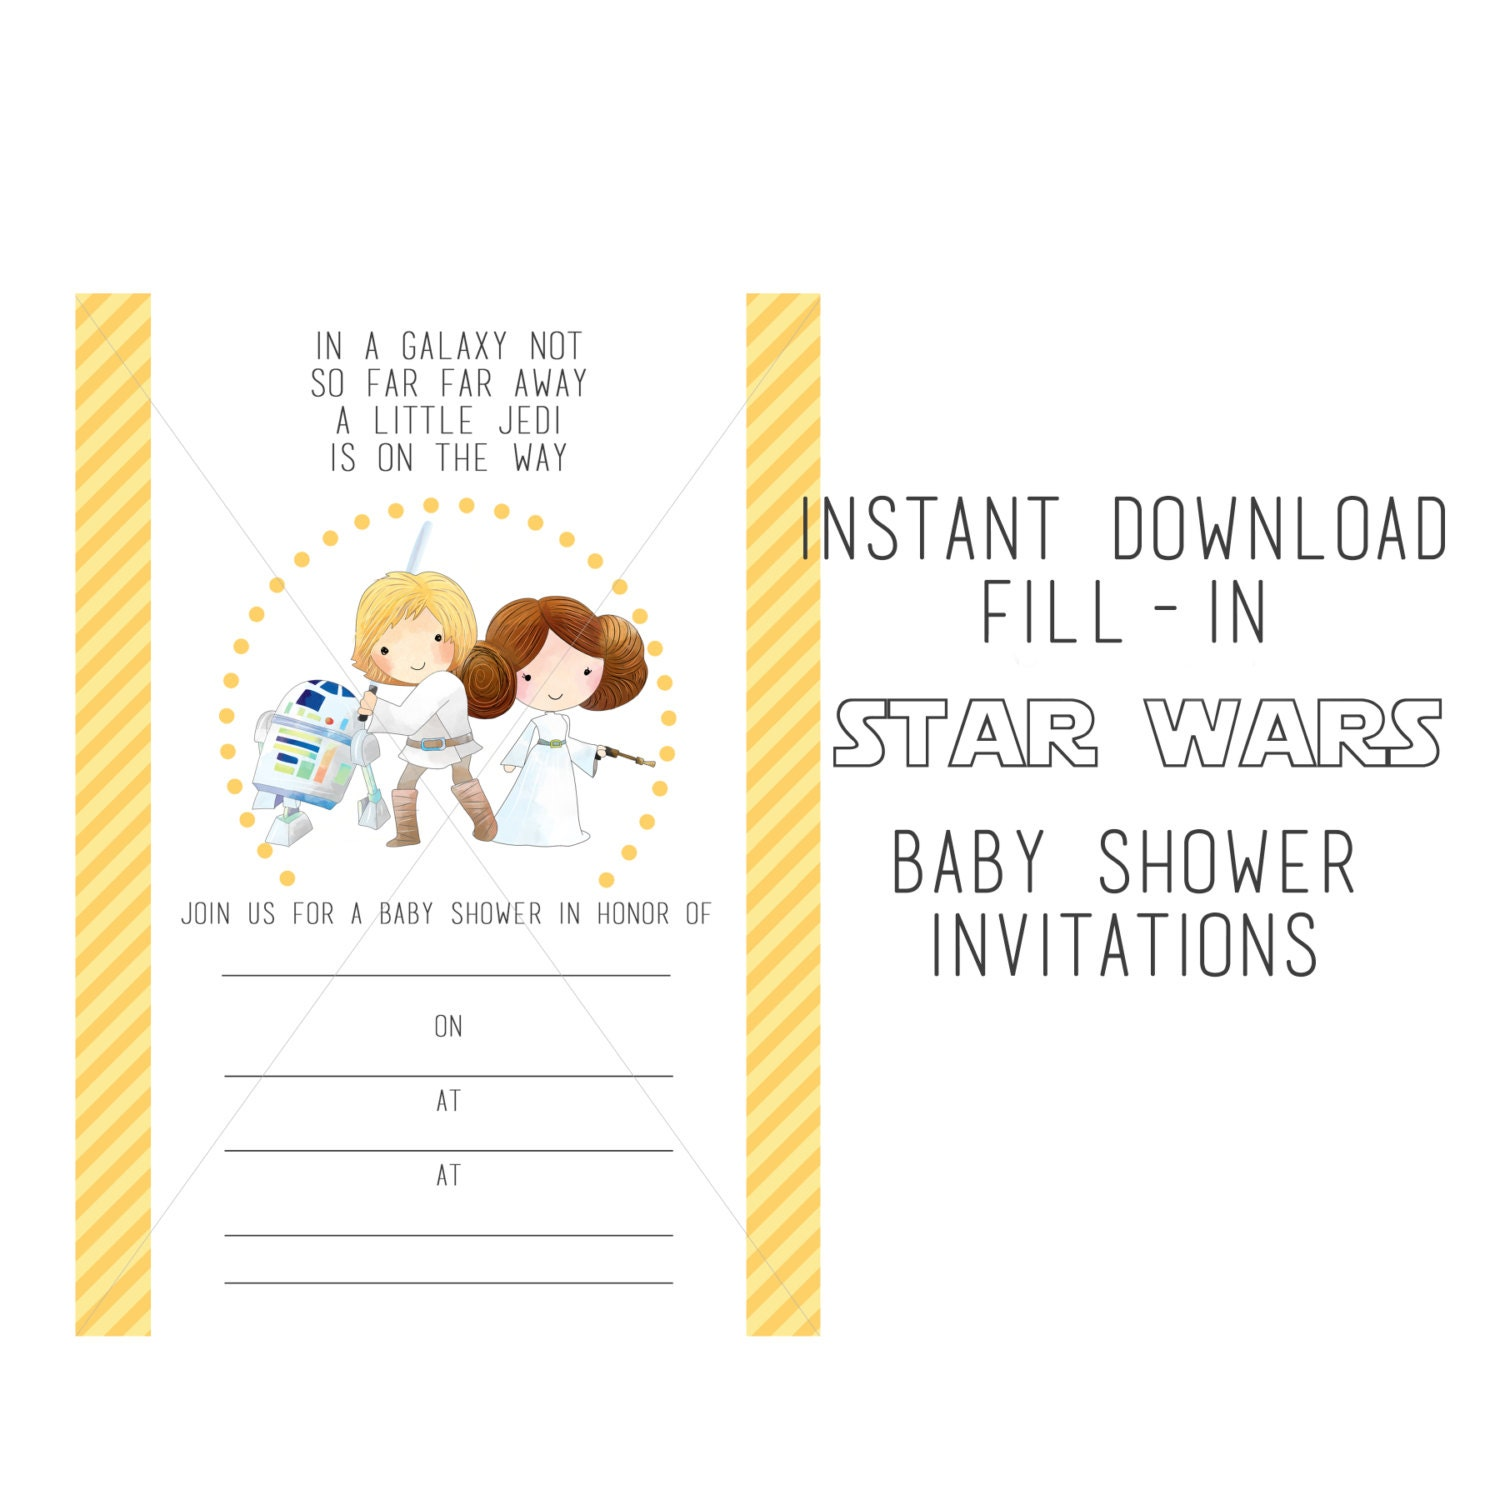 Star Wars Baby Shower Invitation Fill-in Instant Download